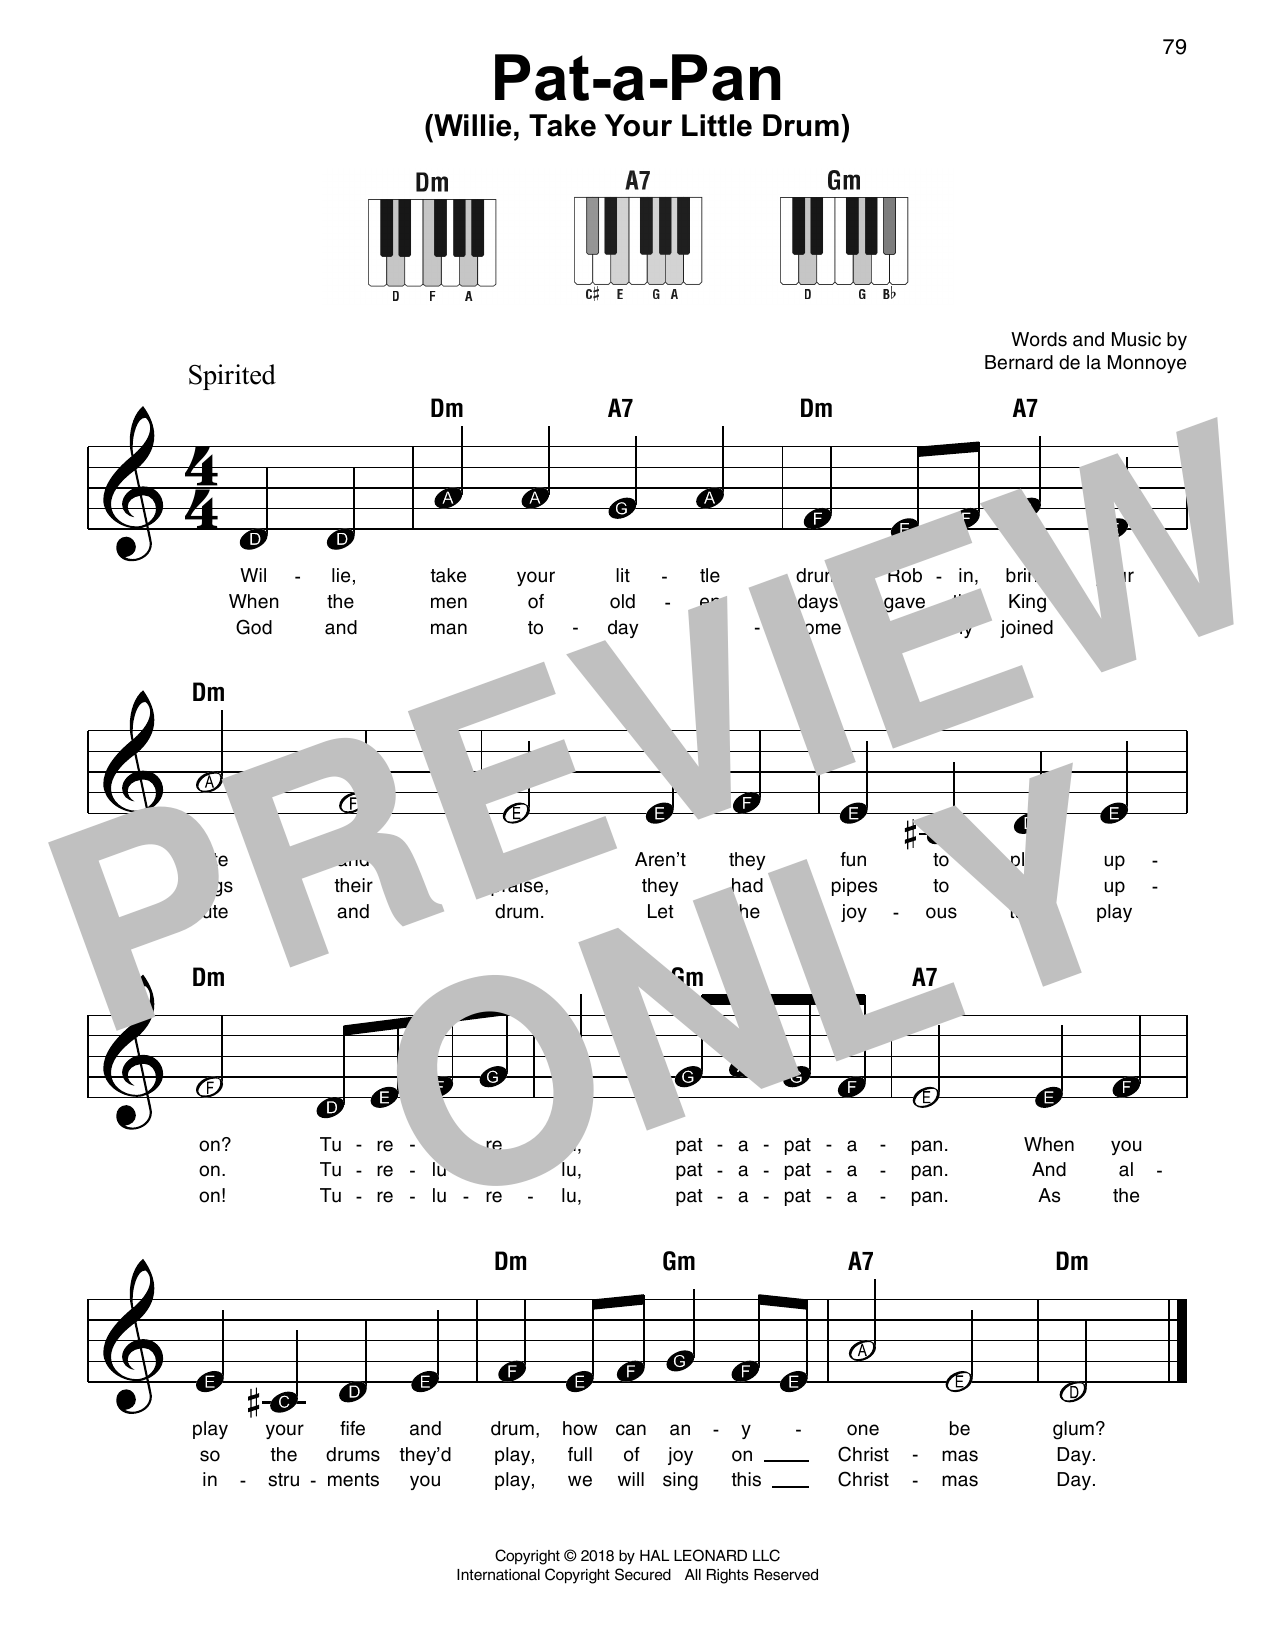 Pat-A-Pan (Willie, Take Your Little Drum) Sheet Music